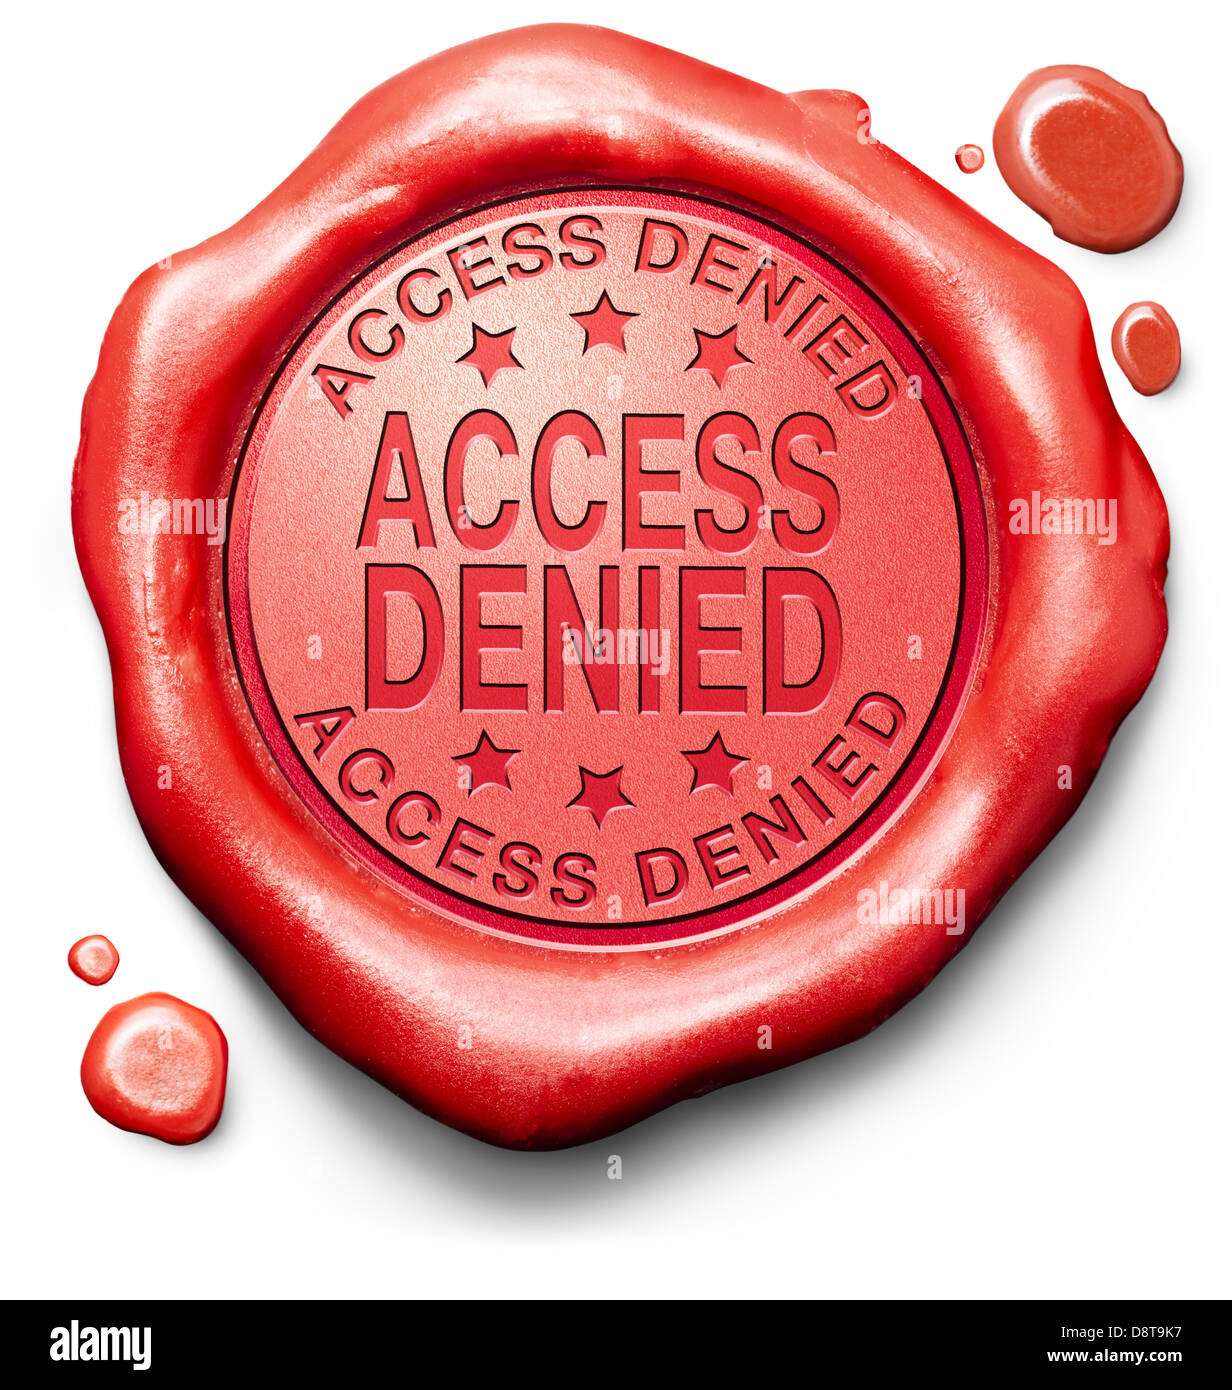 access denied no entrance password control restricted area members only red label icon or stamp - Stock Image